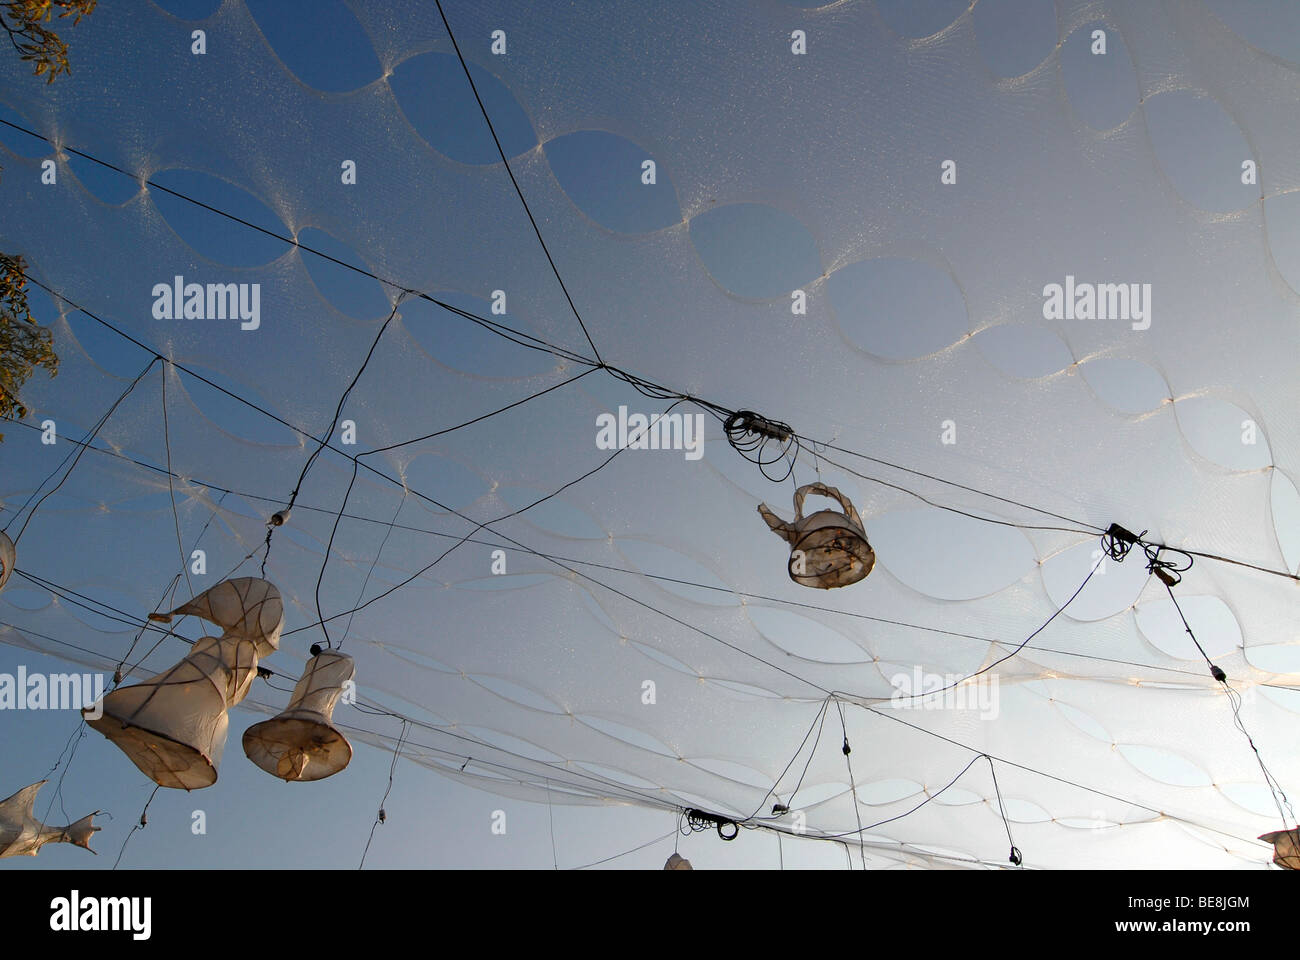 installation made of christmas tree netting power cables and light objects against a blue summer sky radebeul wine festival